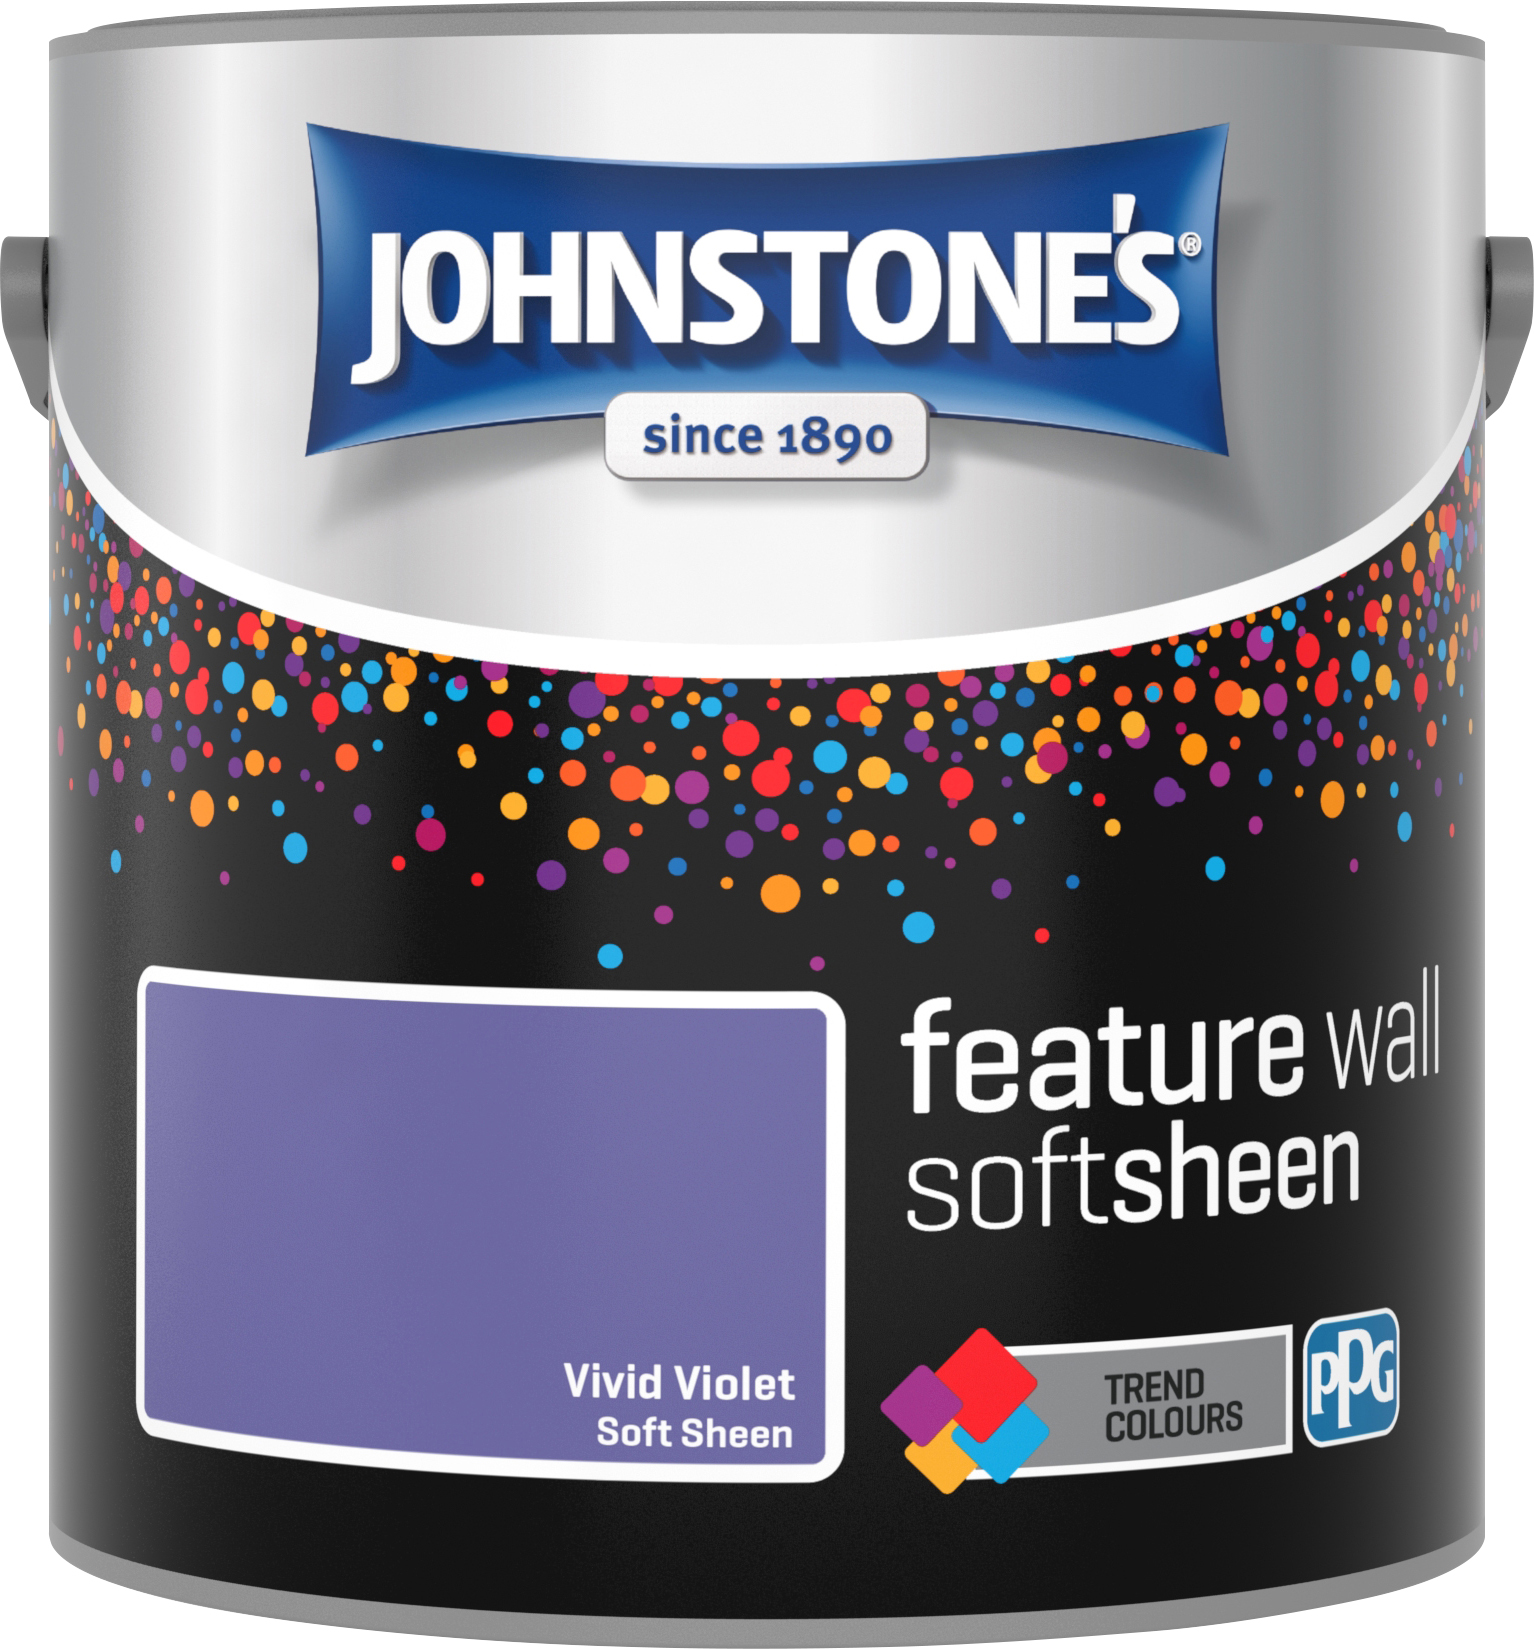 Johnstone's 2.5 Litre Feature Wall Soft Sheen Emulsion Paint - Vivid Violet